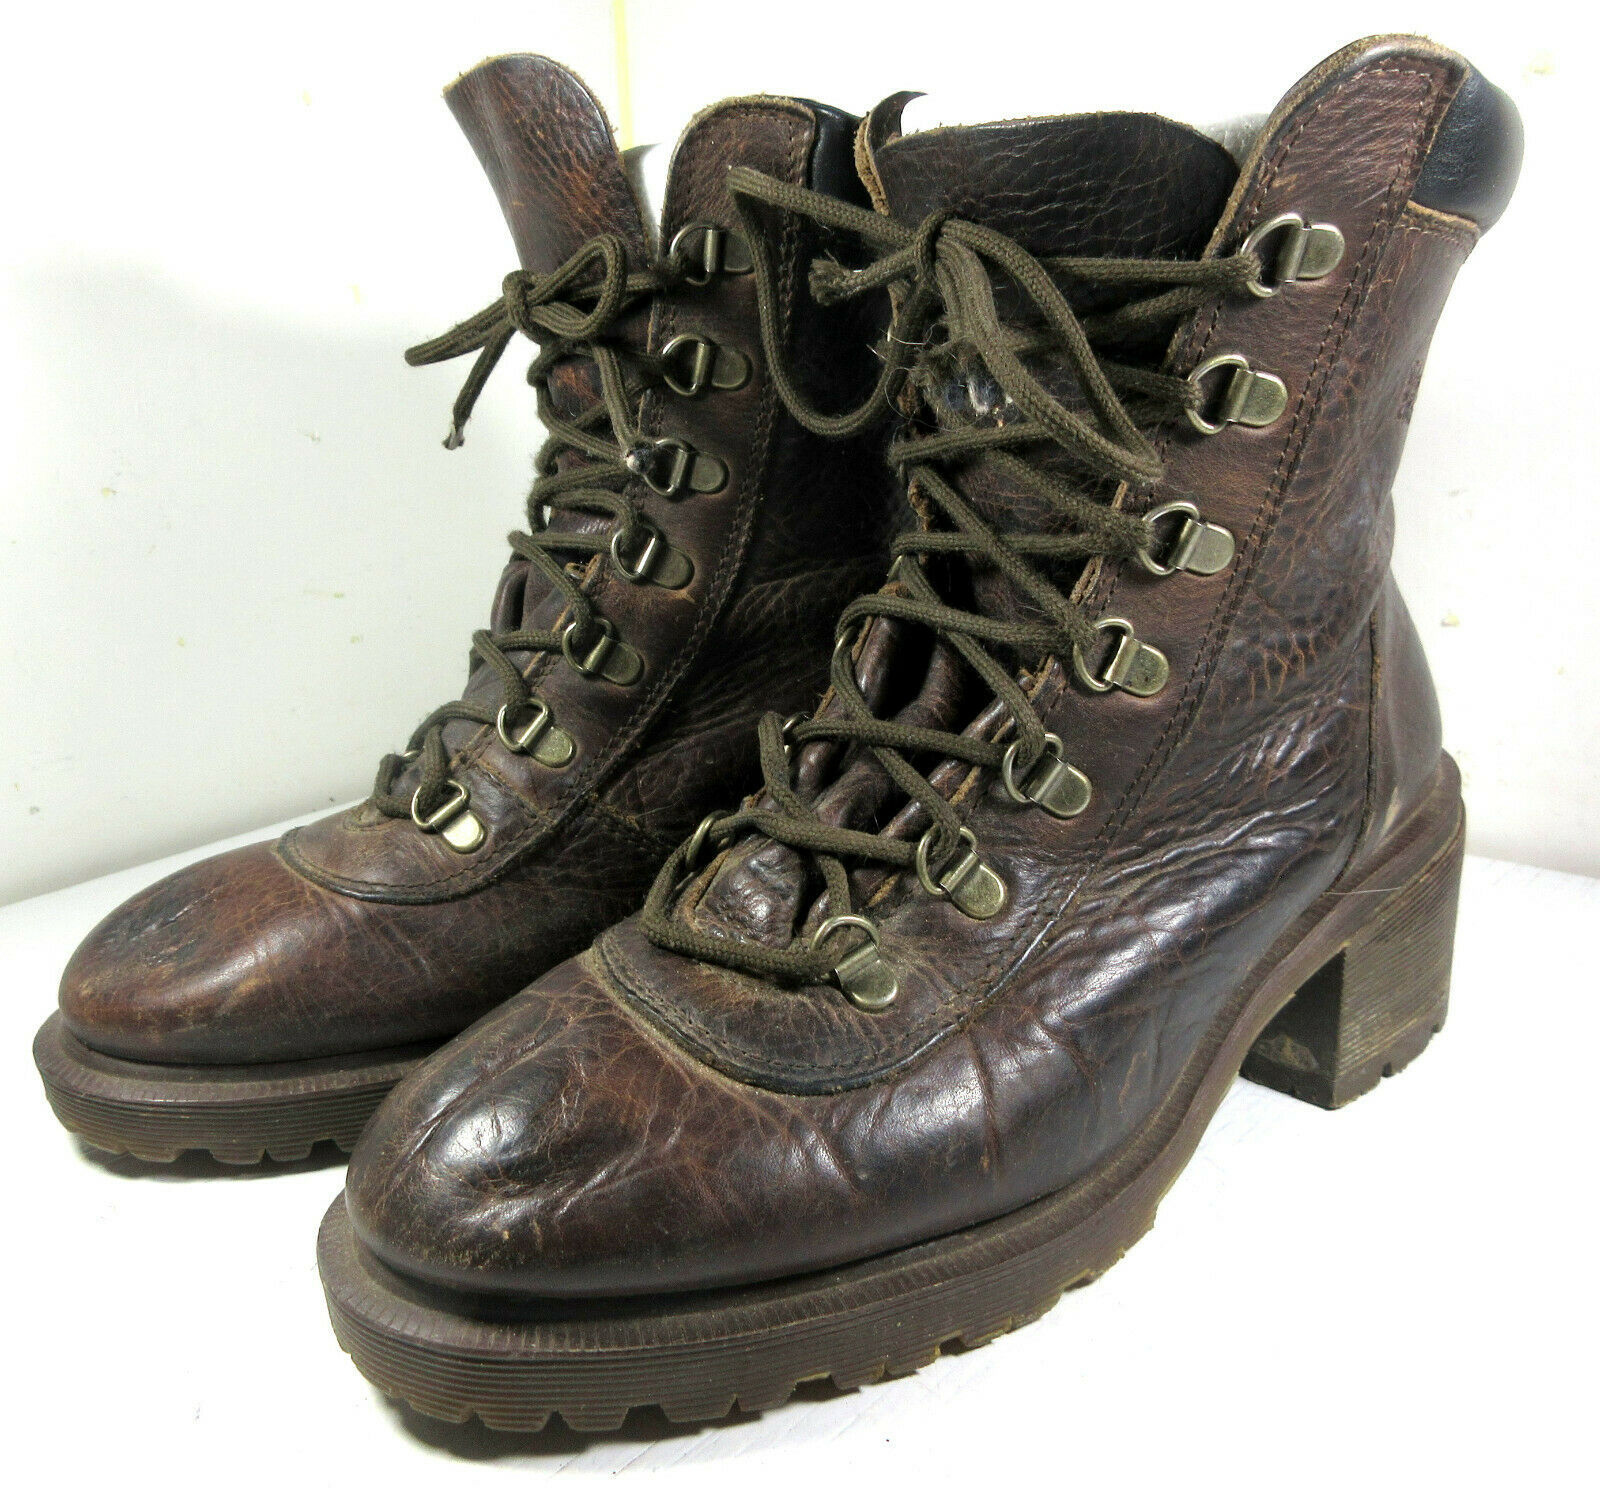 Vintage Dr. Martens Chunky Heel Leather Boots Size 8 US Women's 8147 - $49.45